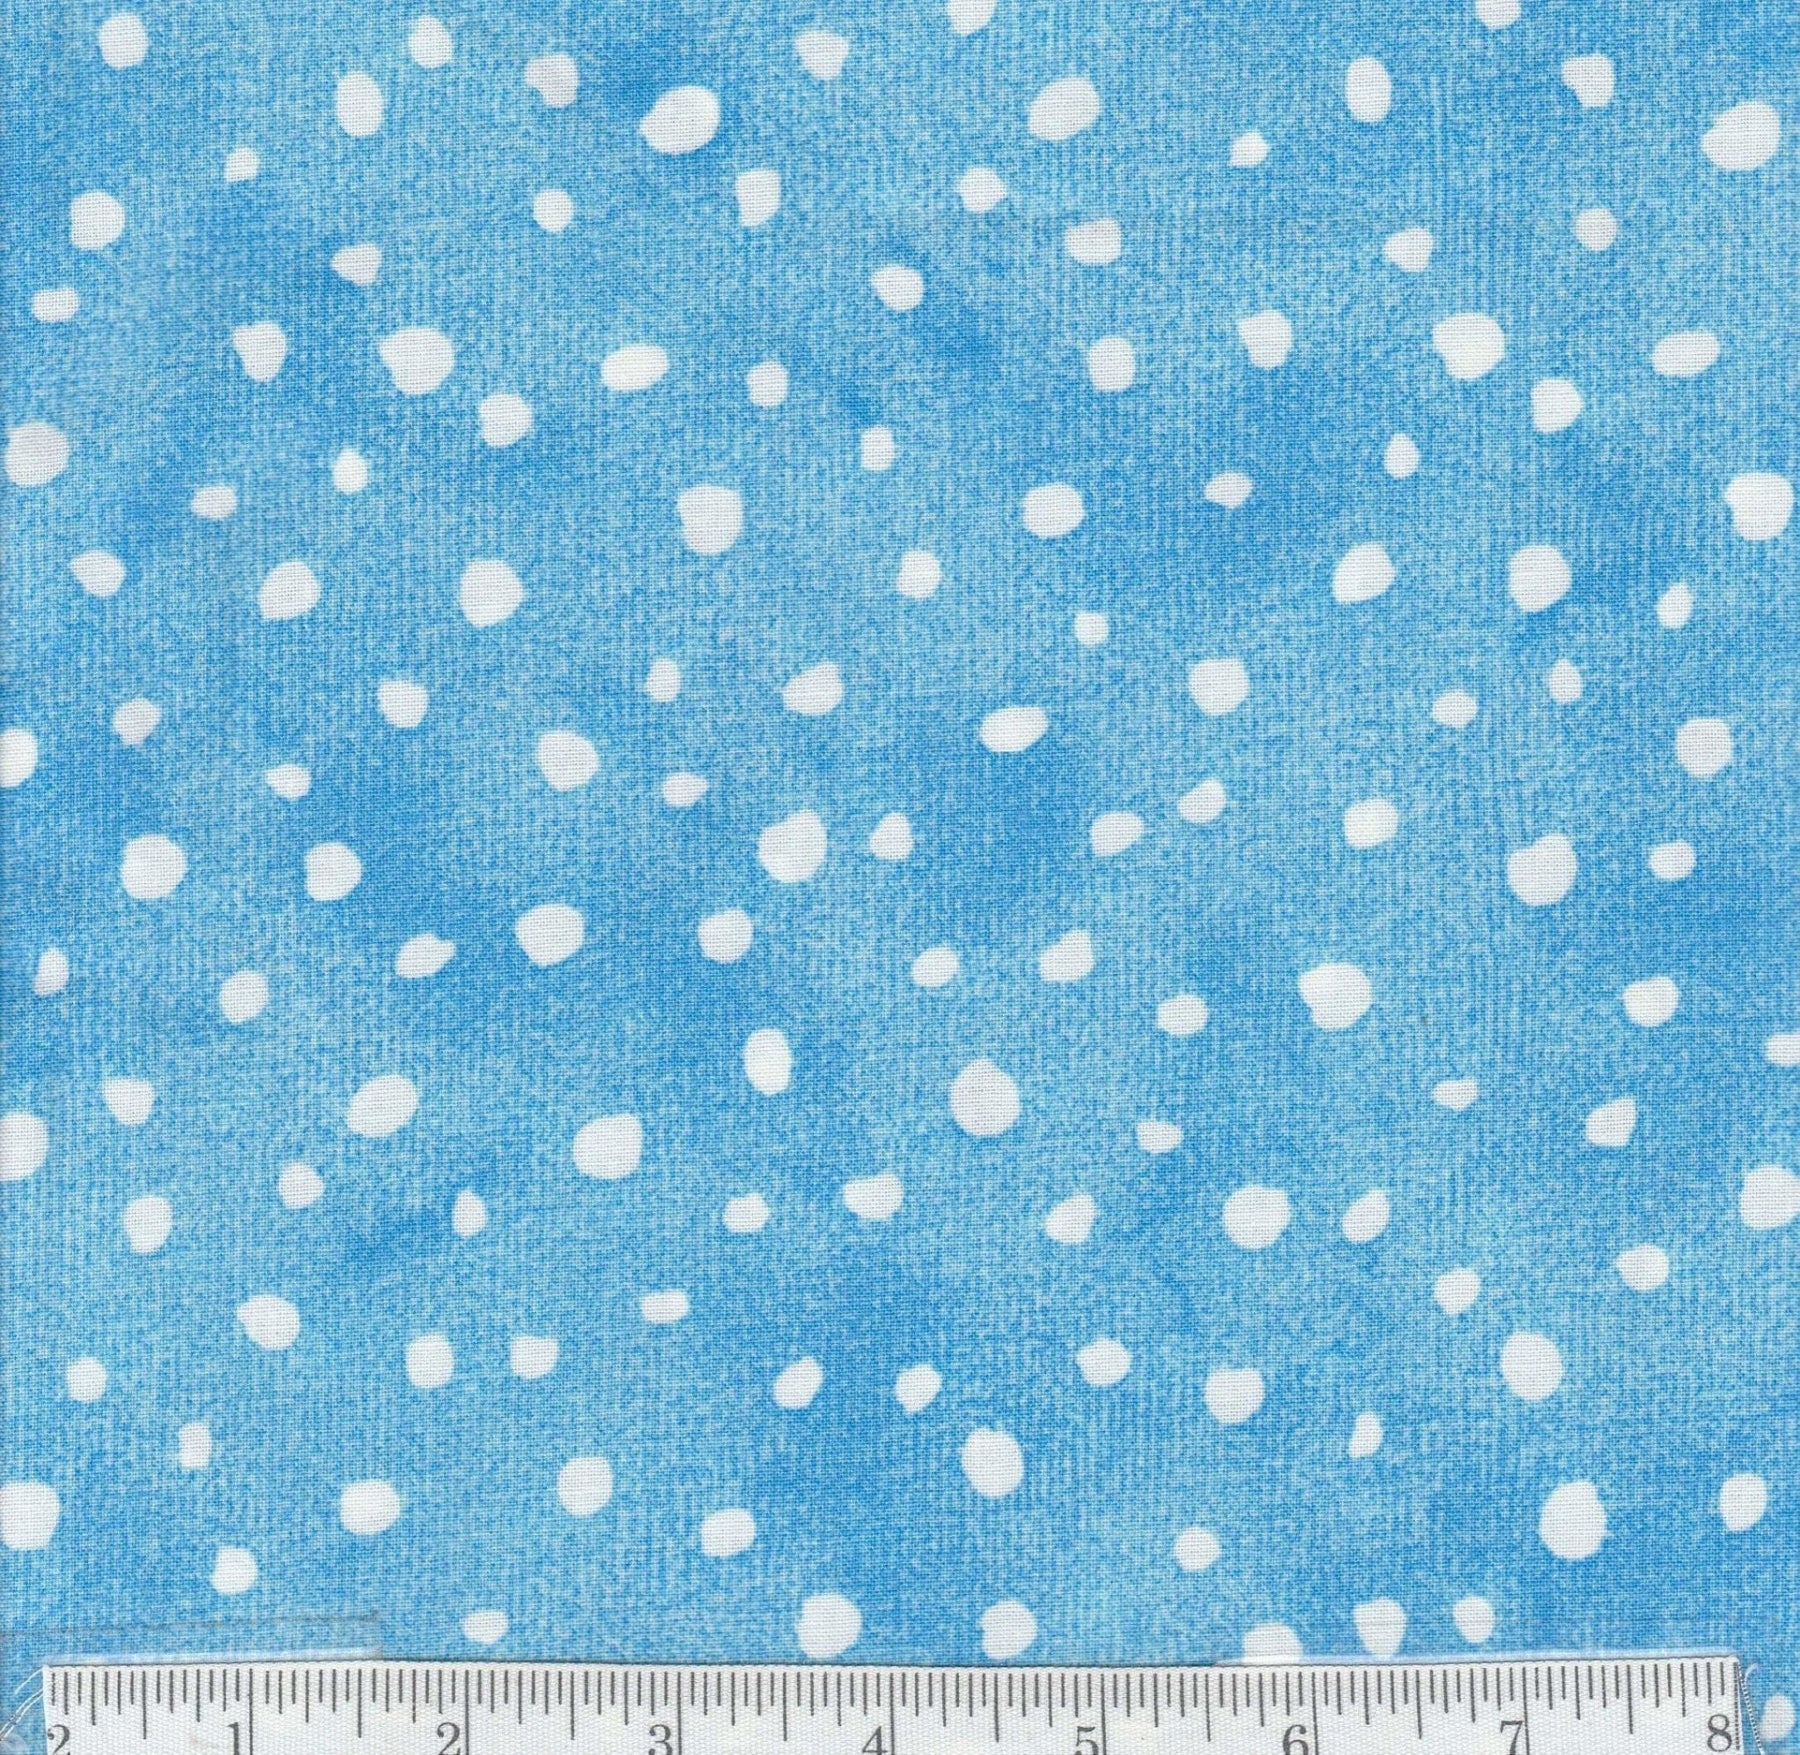 Fancy Free - Per Yard - Benartex - by E. Vive - Fun Fun Fun! - Spots on Blue - RebsFabStash